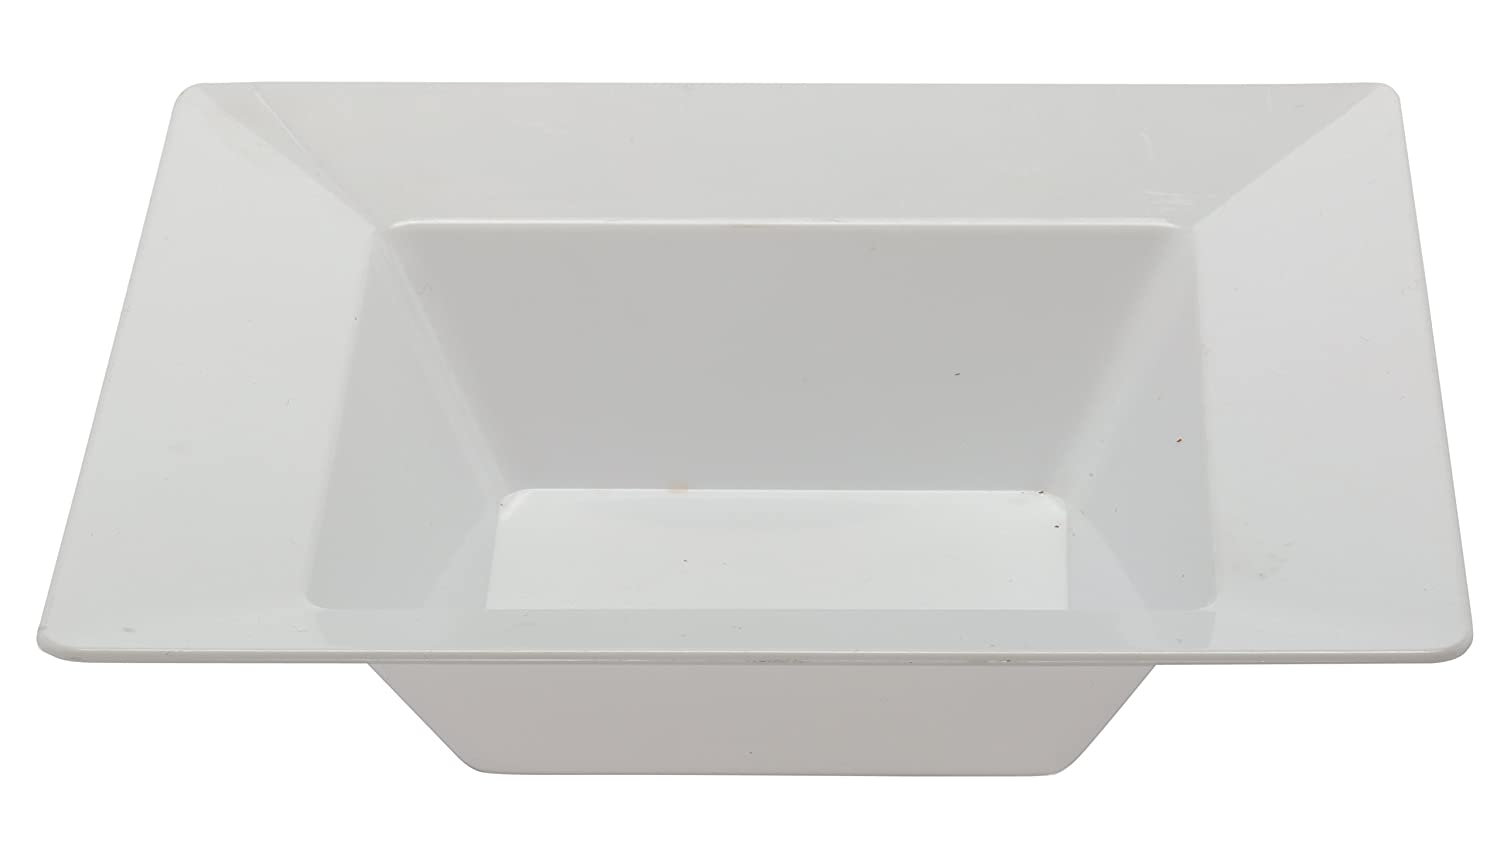 Table To Go 200 Piece Plate Set, Square Pearl Design, White 710228905697